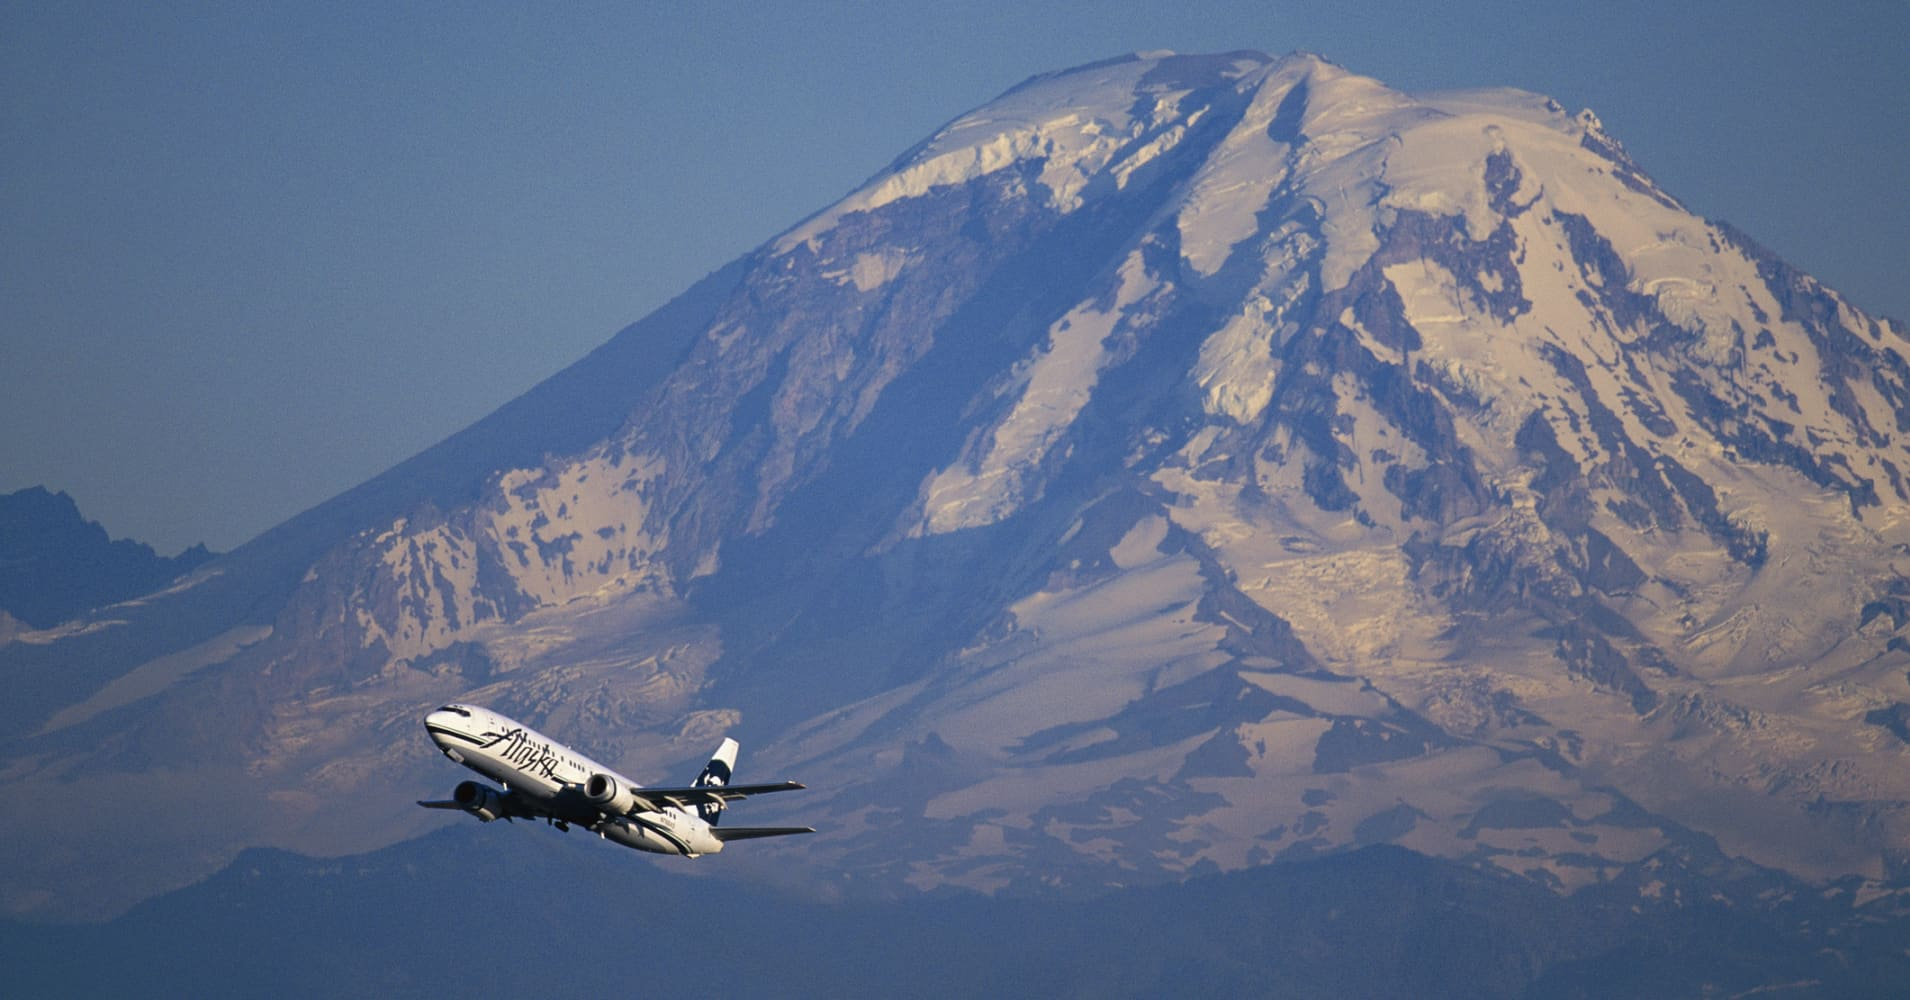 Alaska Airlines Makes History With First Commercial Flight